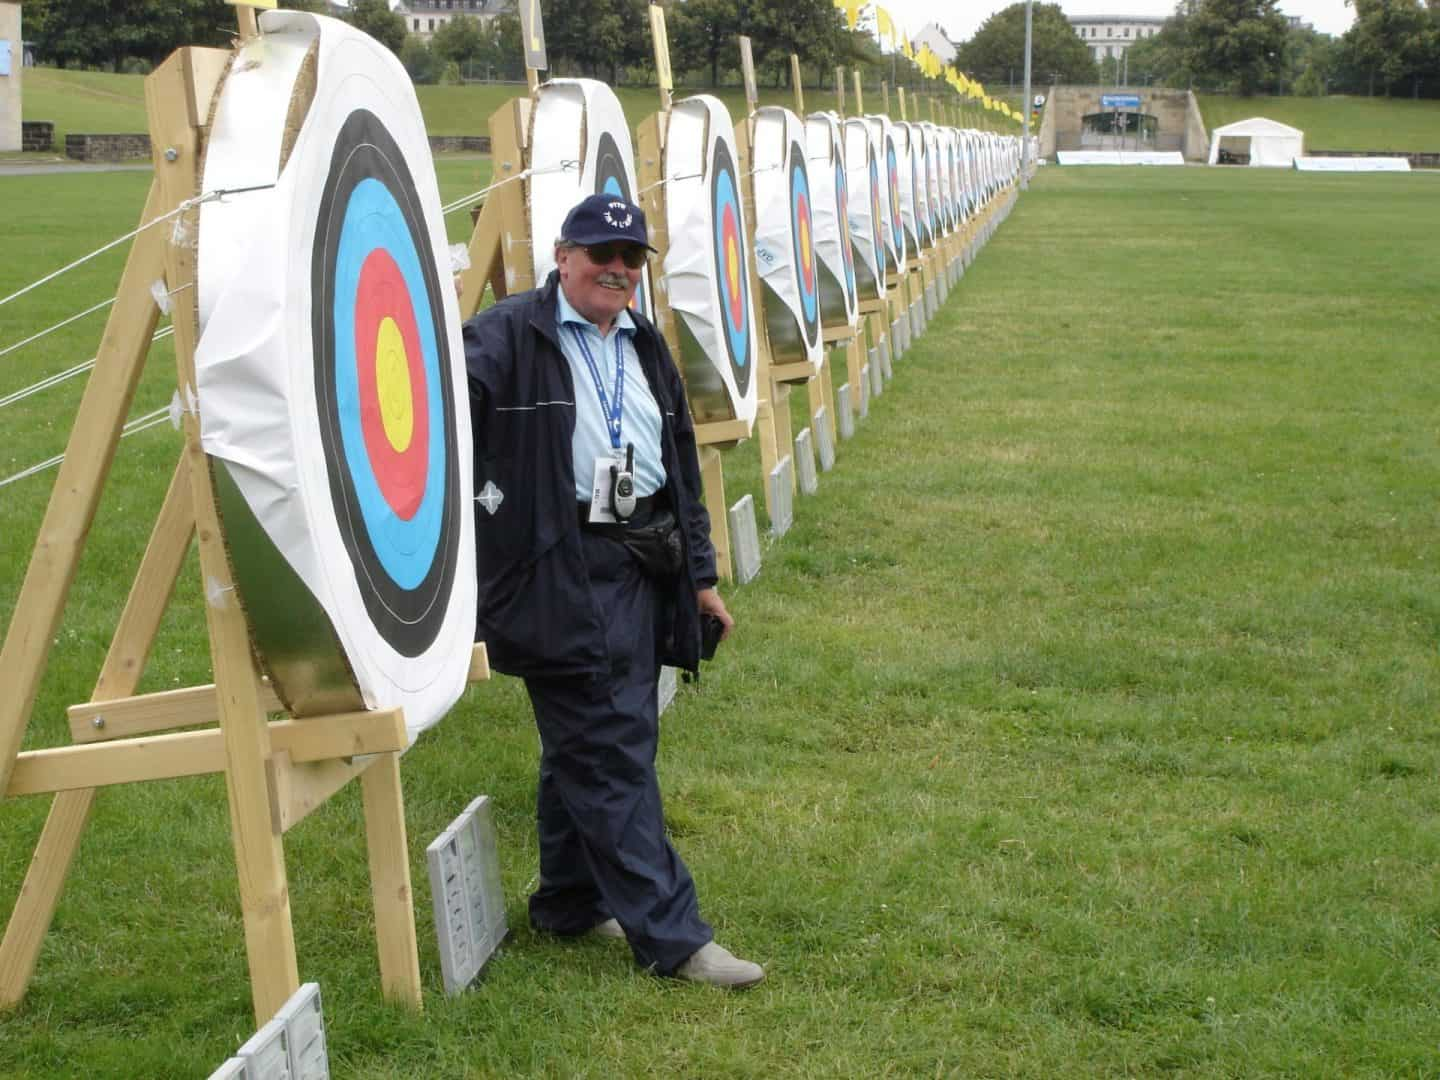 Archery judge and archery targets